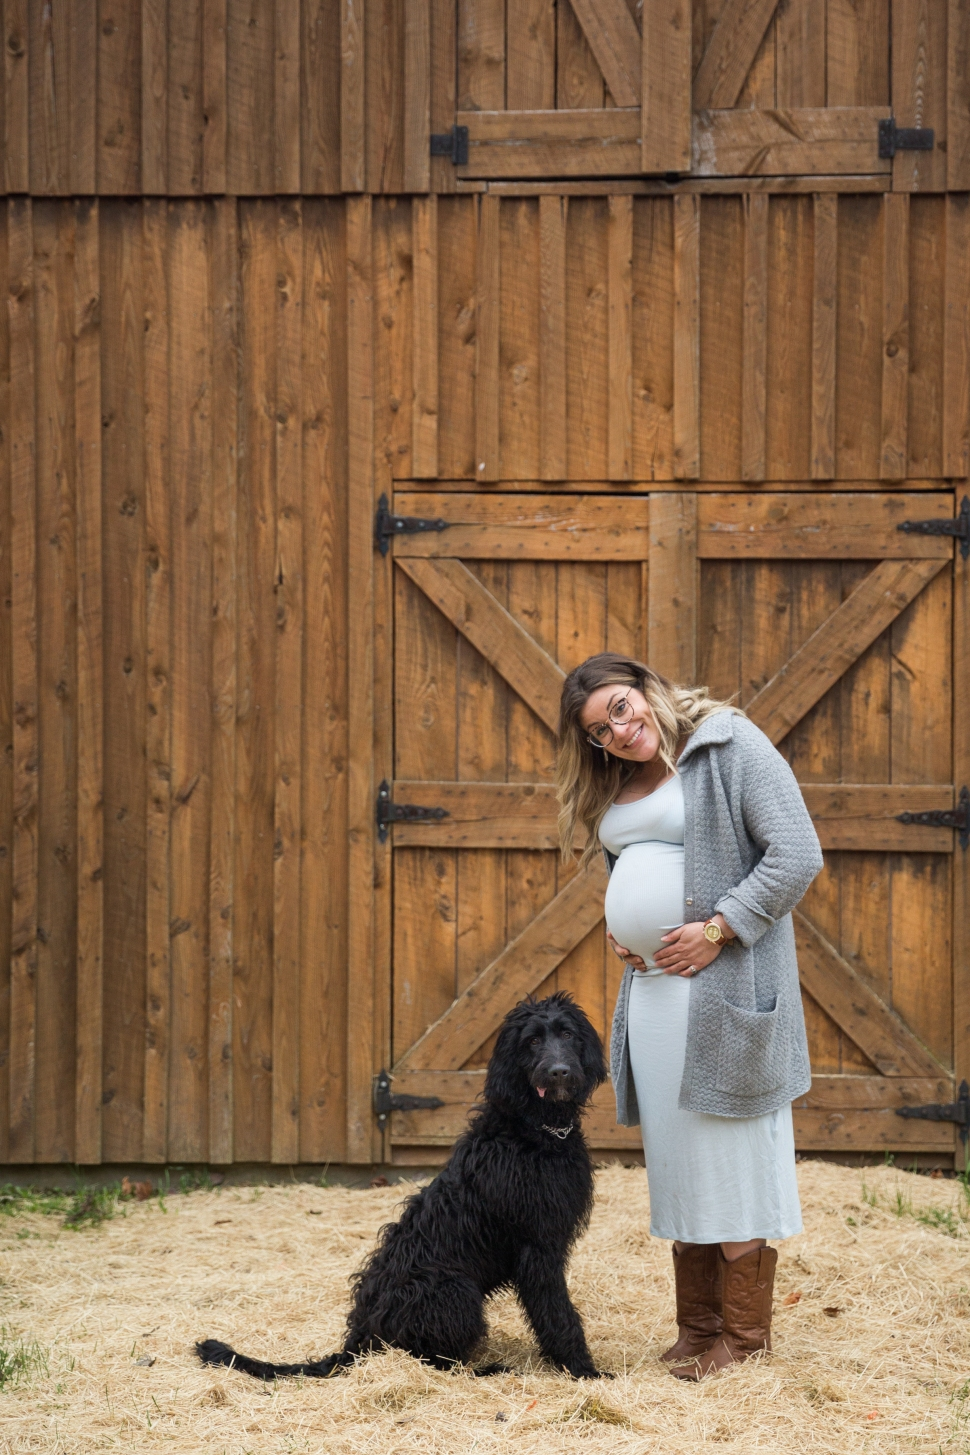 montreal_lifestyle_maternity_photographer_photography_photographe_maternite_chateau-19